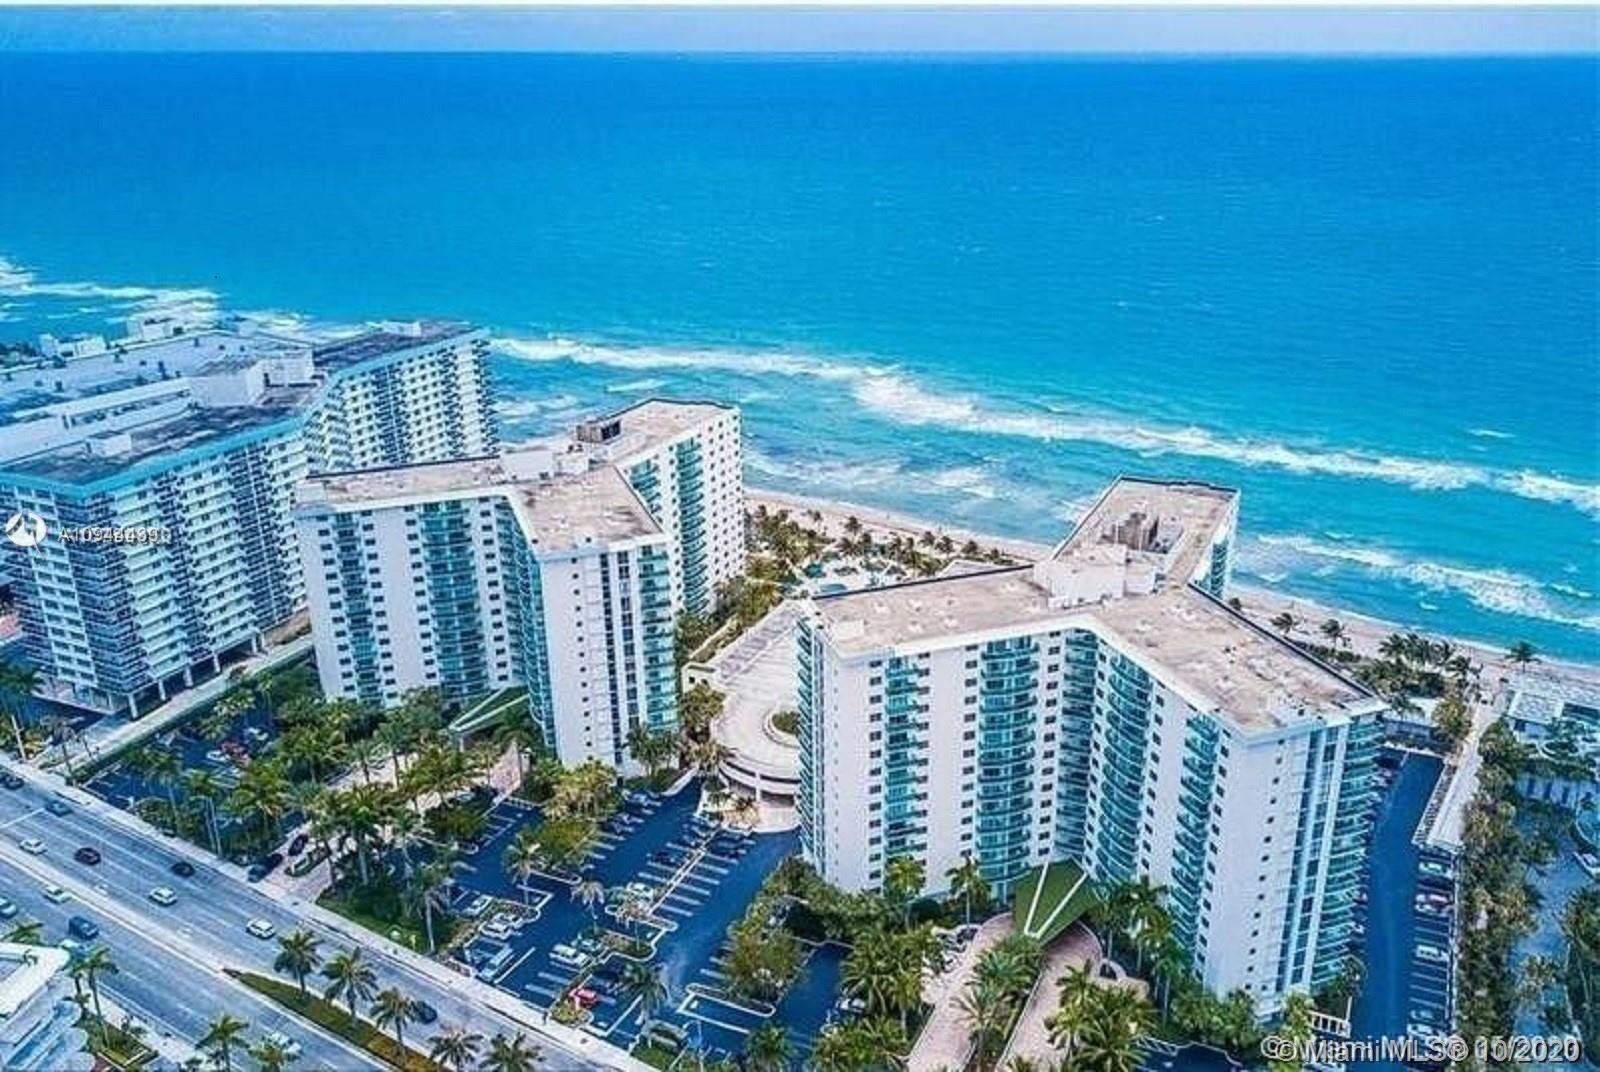 This gem of condo is located within a beach resort style amenity and is priced to sell quickly. It o